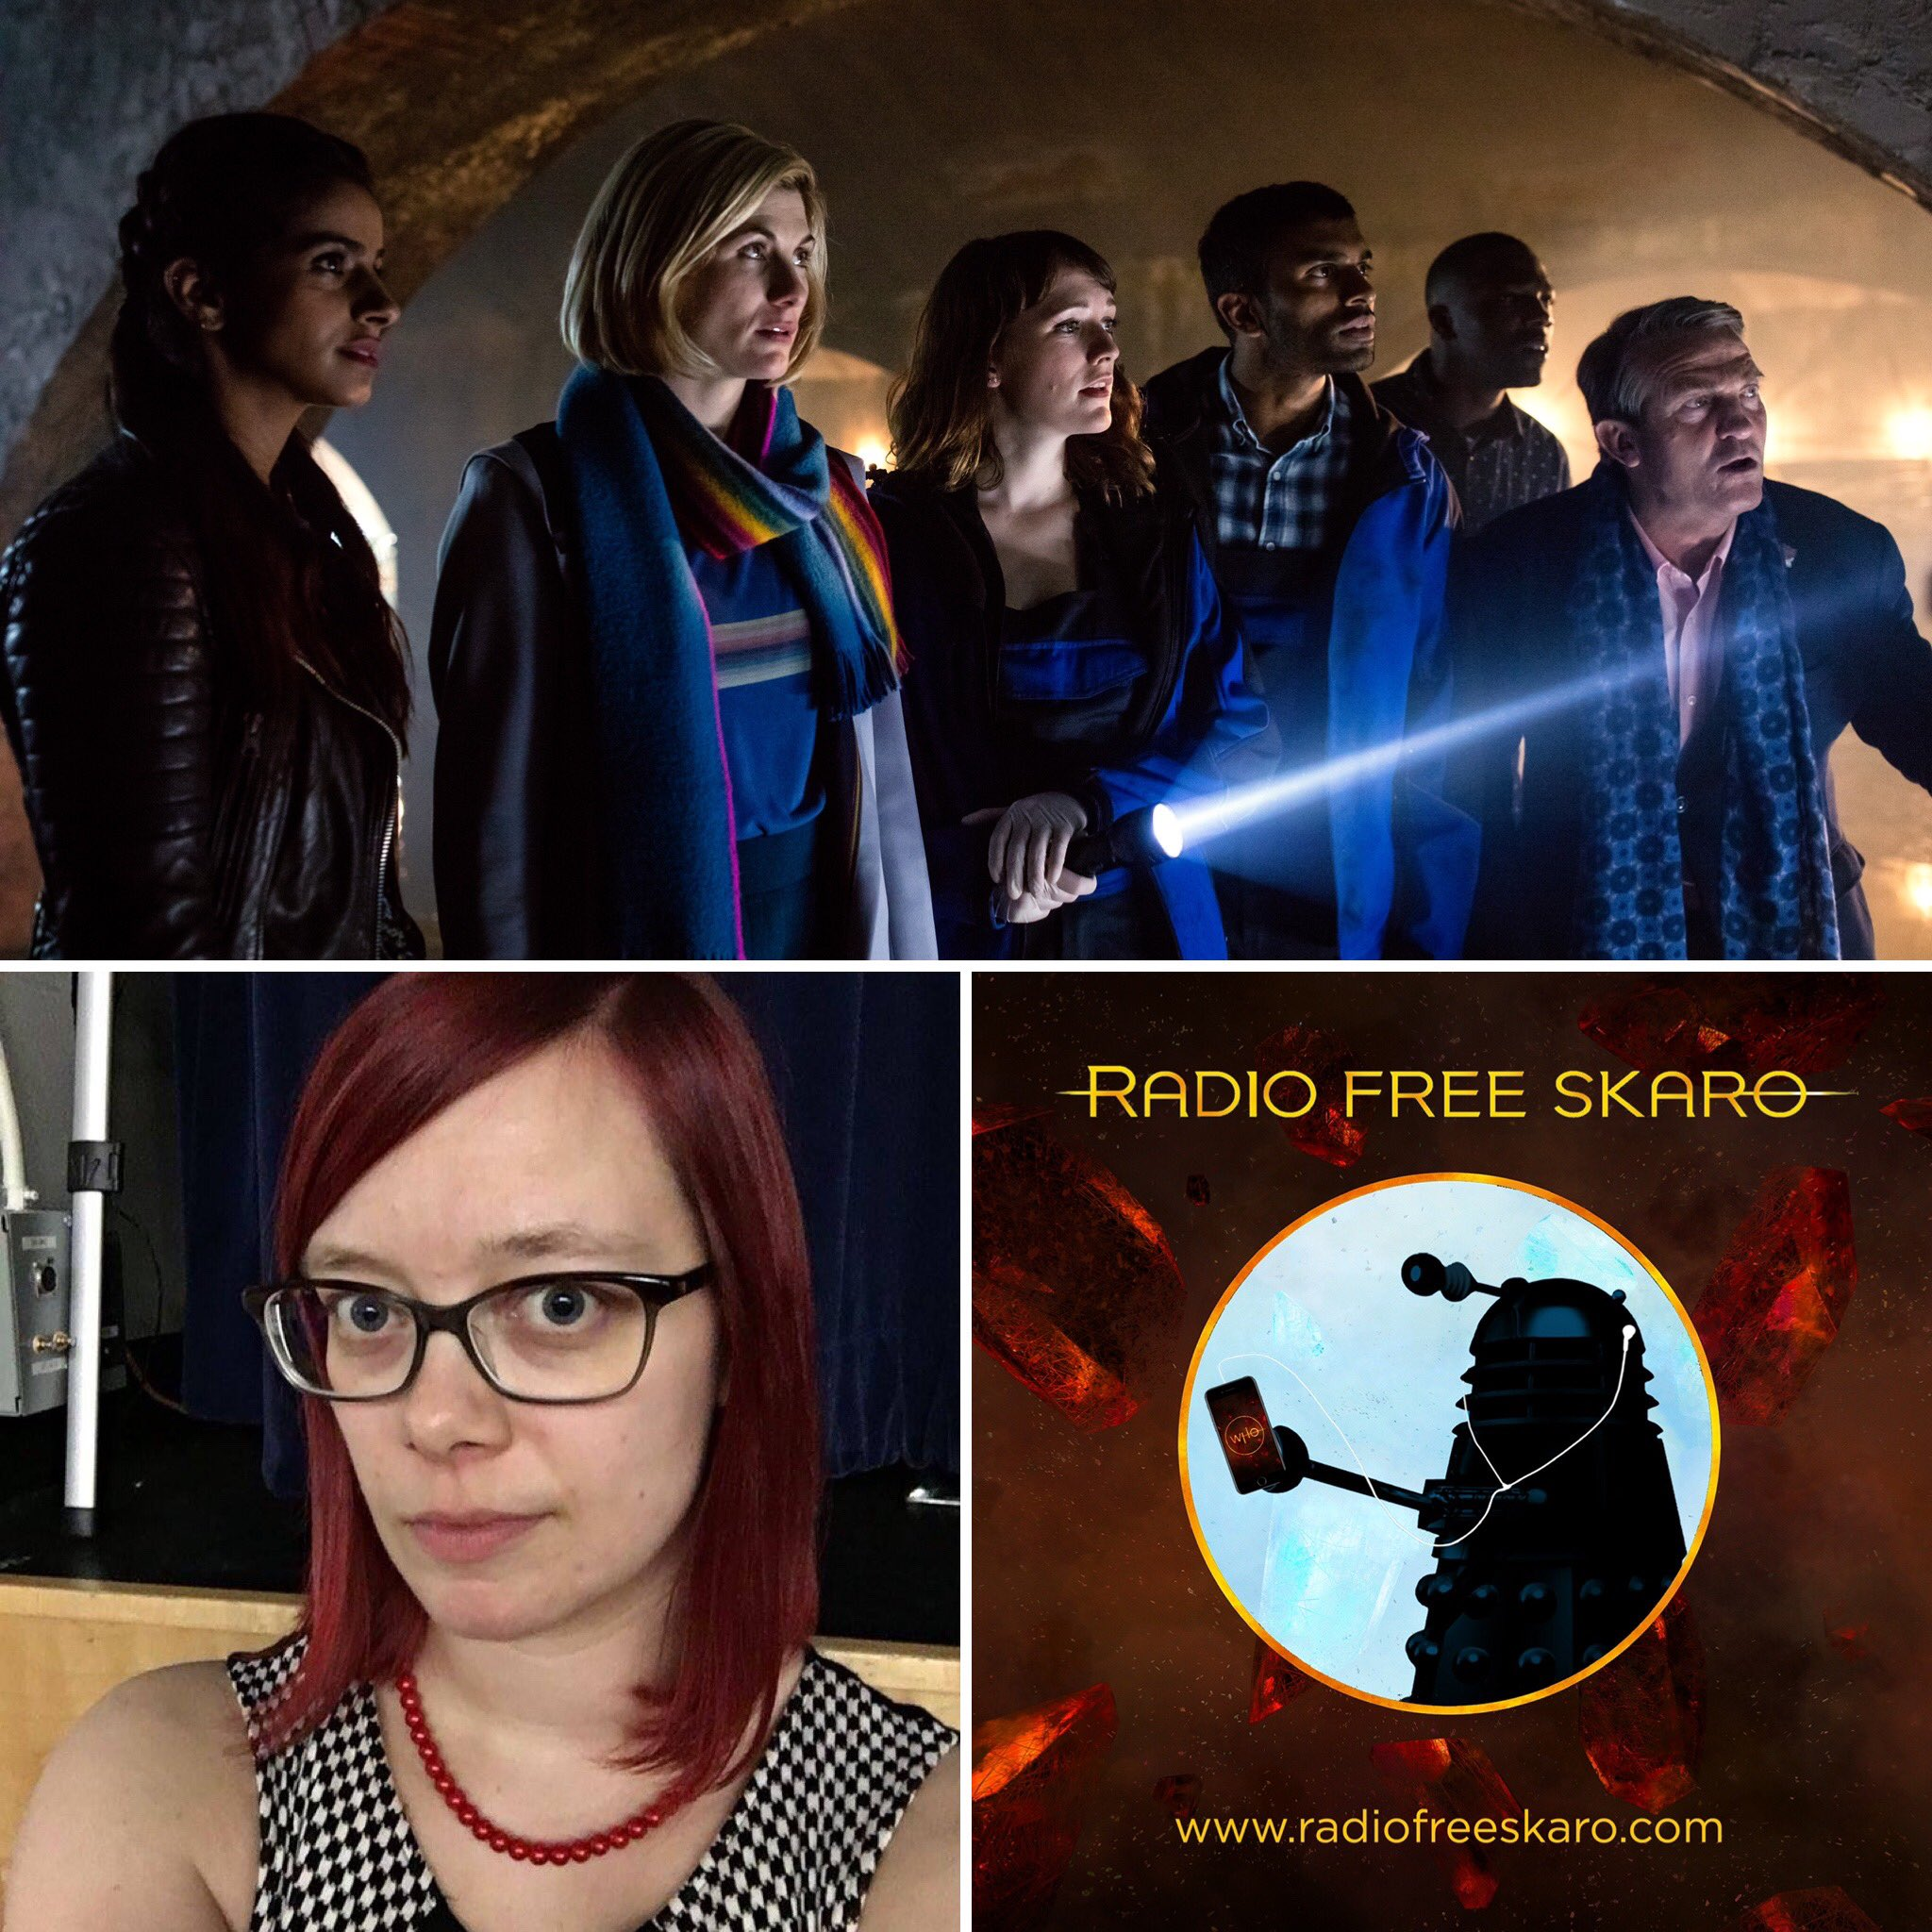 Radio Free Skaro On Twitter Sunday On Rfs 716 It S A Jam Packed Episode With Our Final Doctorwho Series 11 Commentary For Resolution W Guest Danicahere And Also All The News On Series